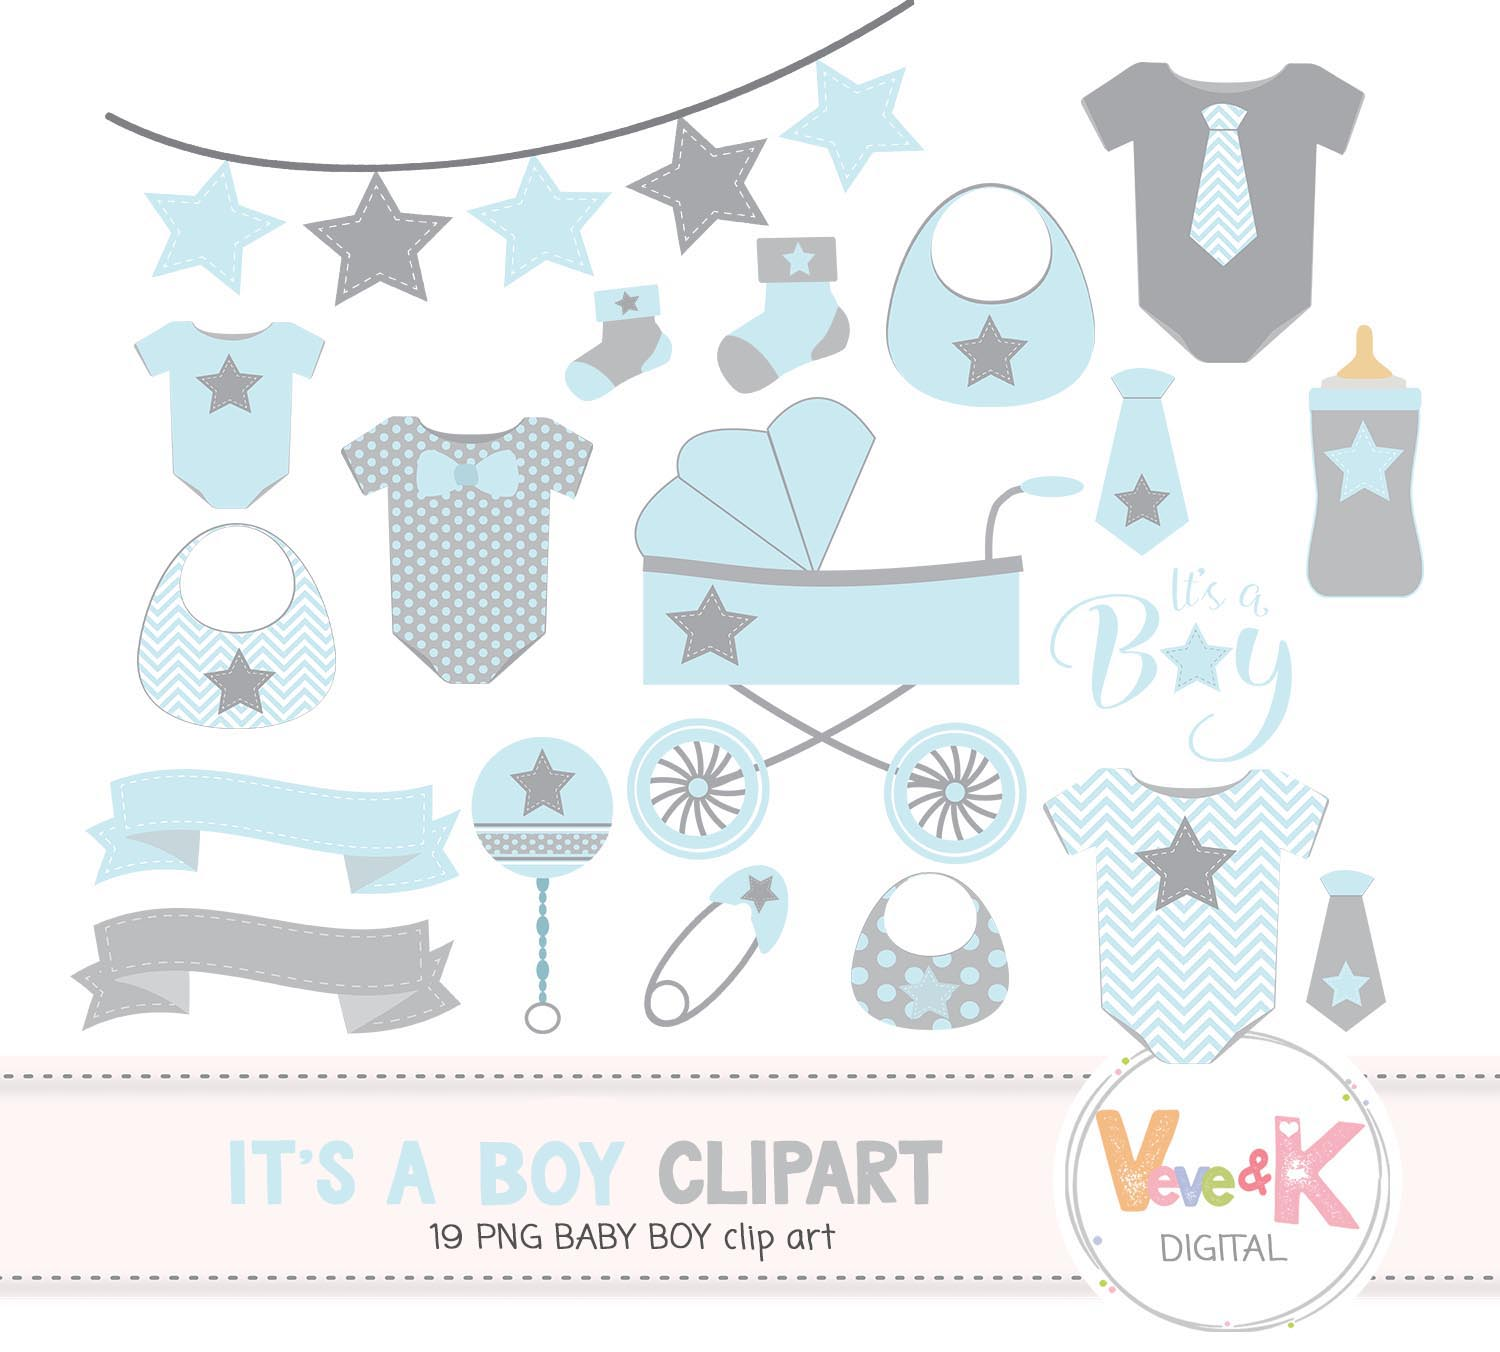 hight resolution of baby clip art baby boy clipart baby boyl baby shower diy it s a